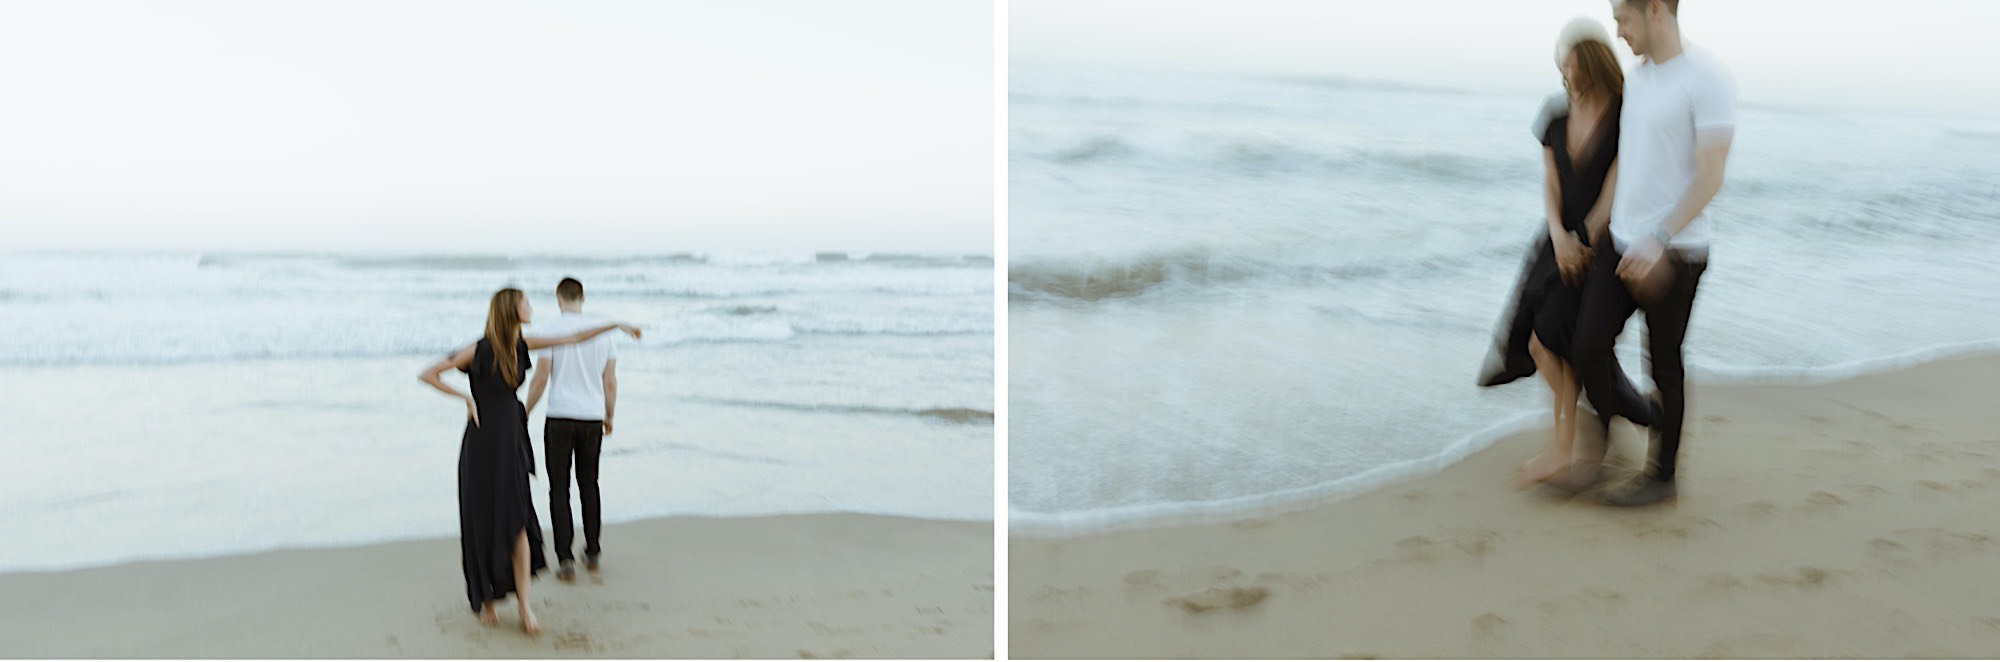 half moon bay beach engagement session on film